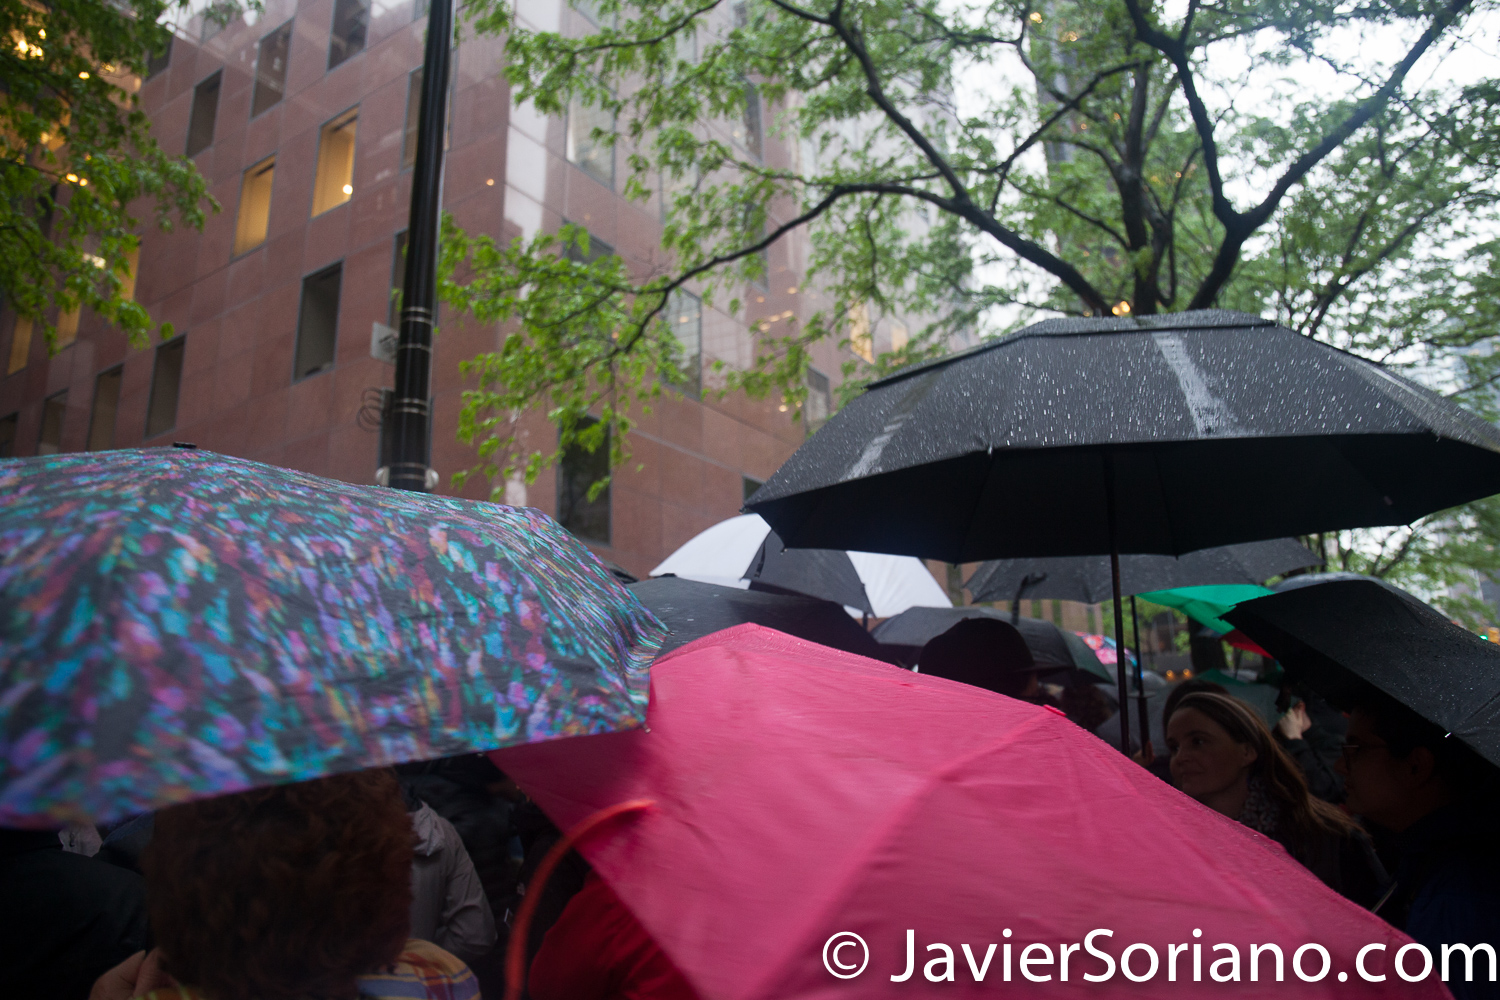 5/16/2018. Manhattan, New York City - New Yorkers support Palestine. Activists in front of the offices of Democrat Senators Kirsten Gillibrand & Chuck Schumer (780 3rd Ave). Photo by Javier Soriano/www.JavierSoriano.com